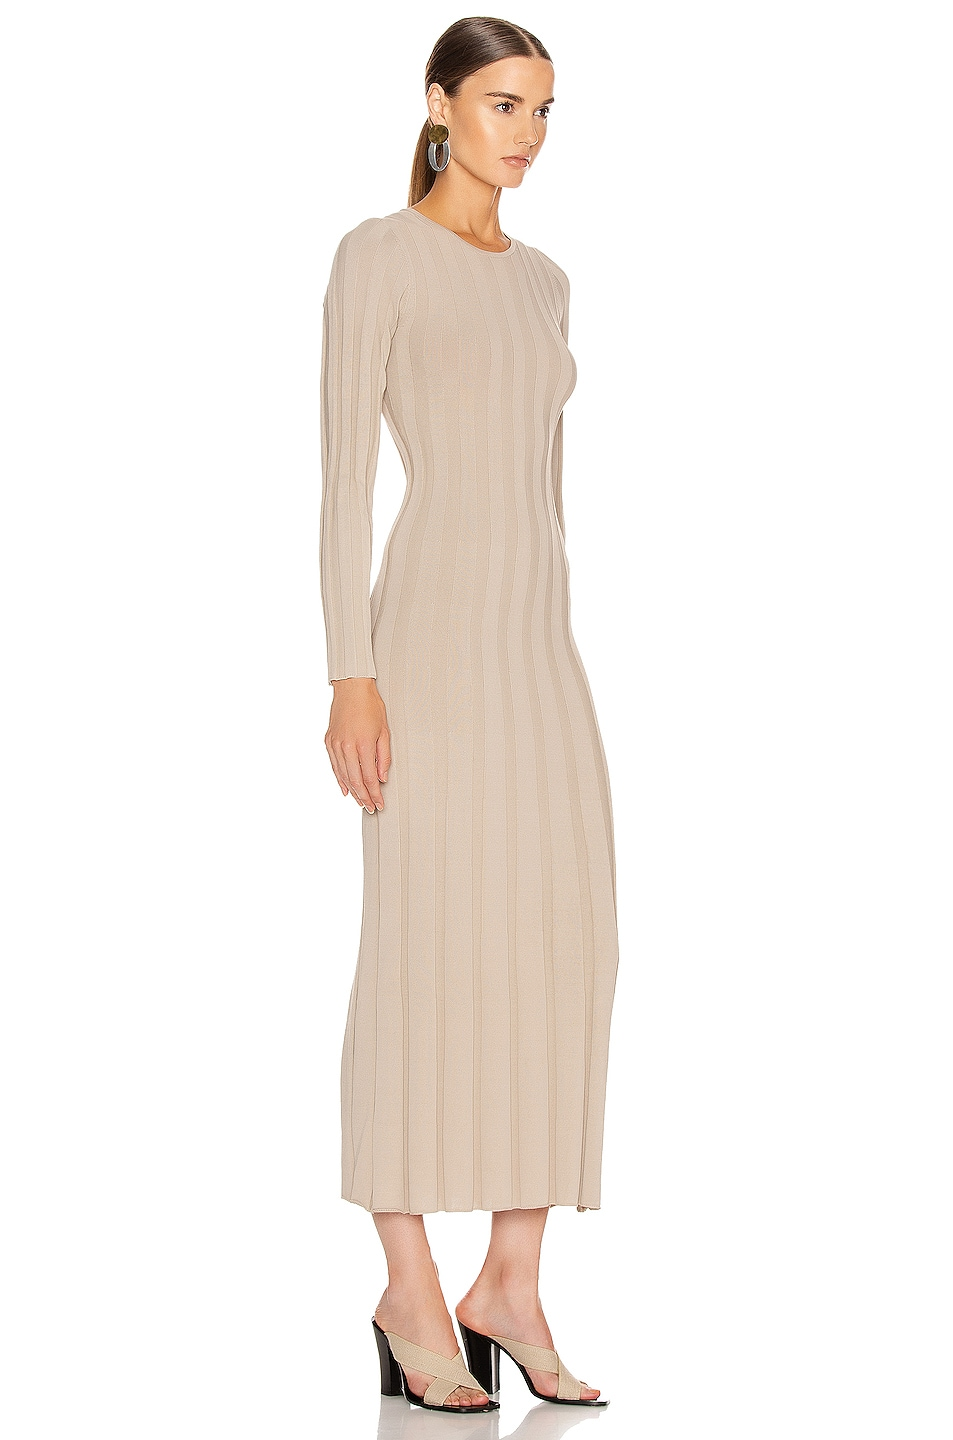 Image 2 of Toteme Bianco Dress in Sand